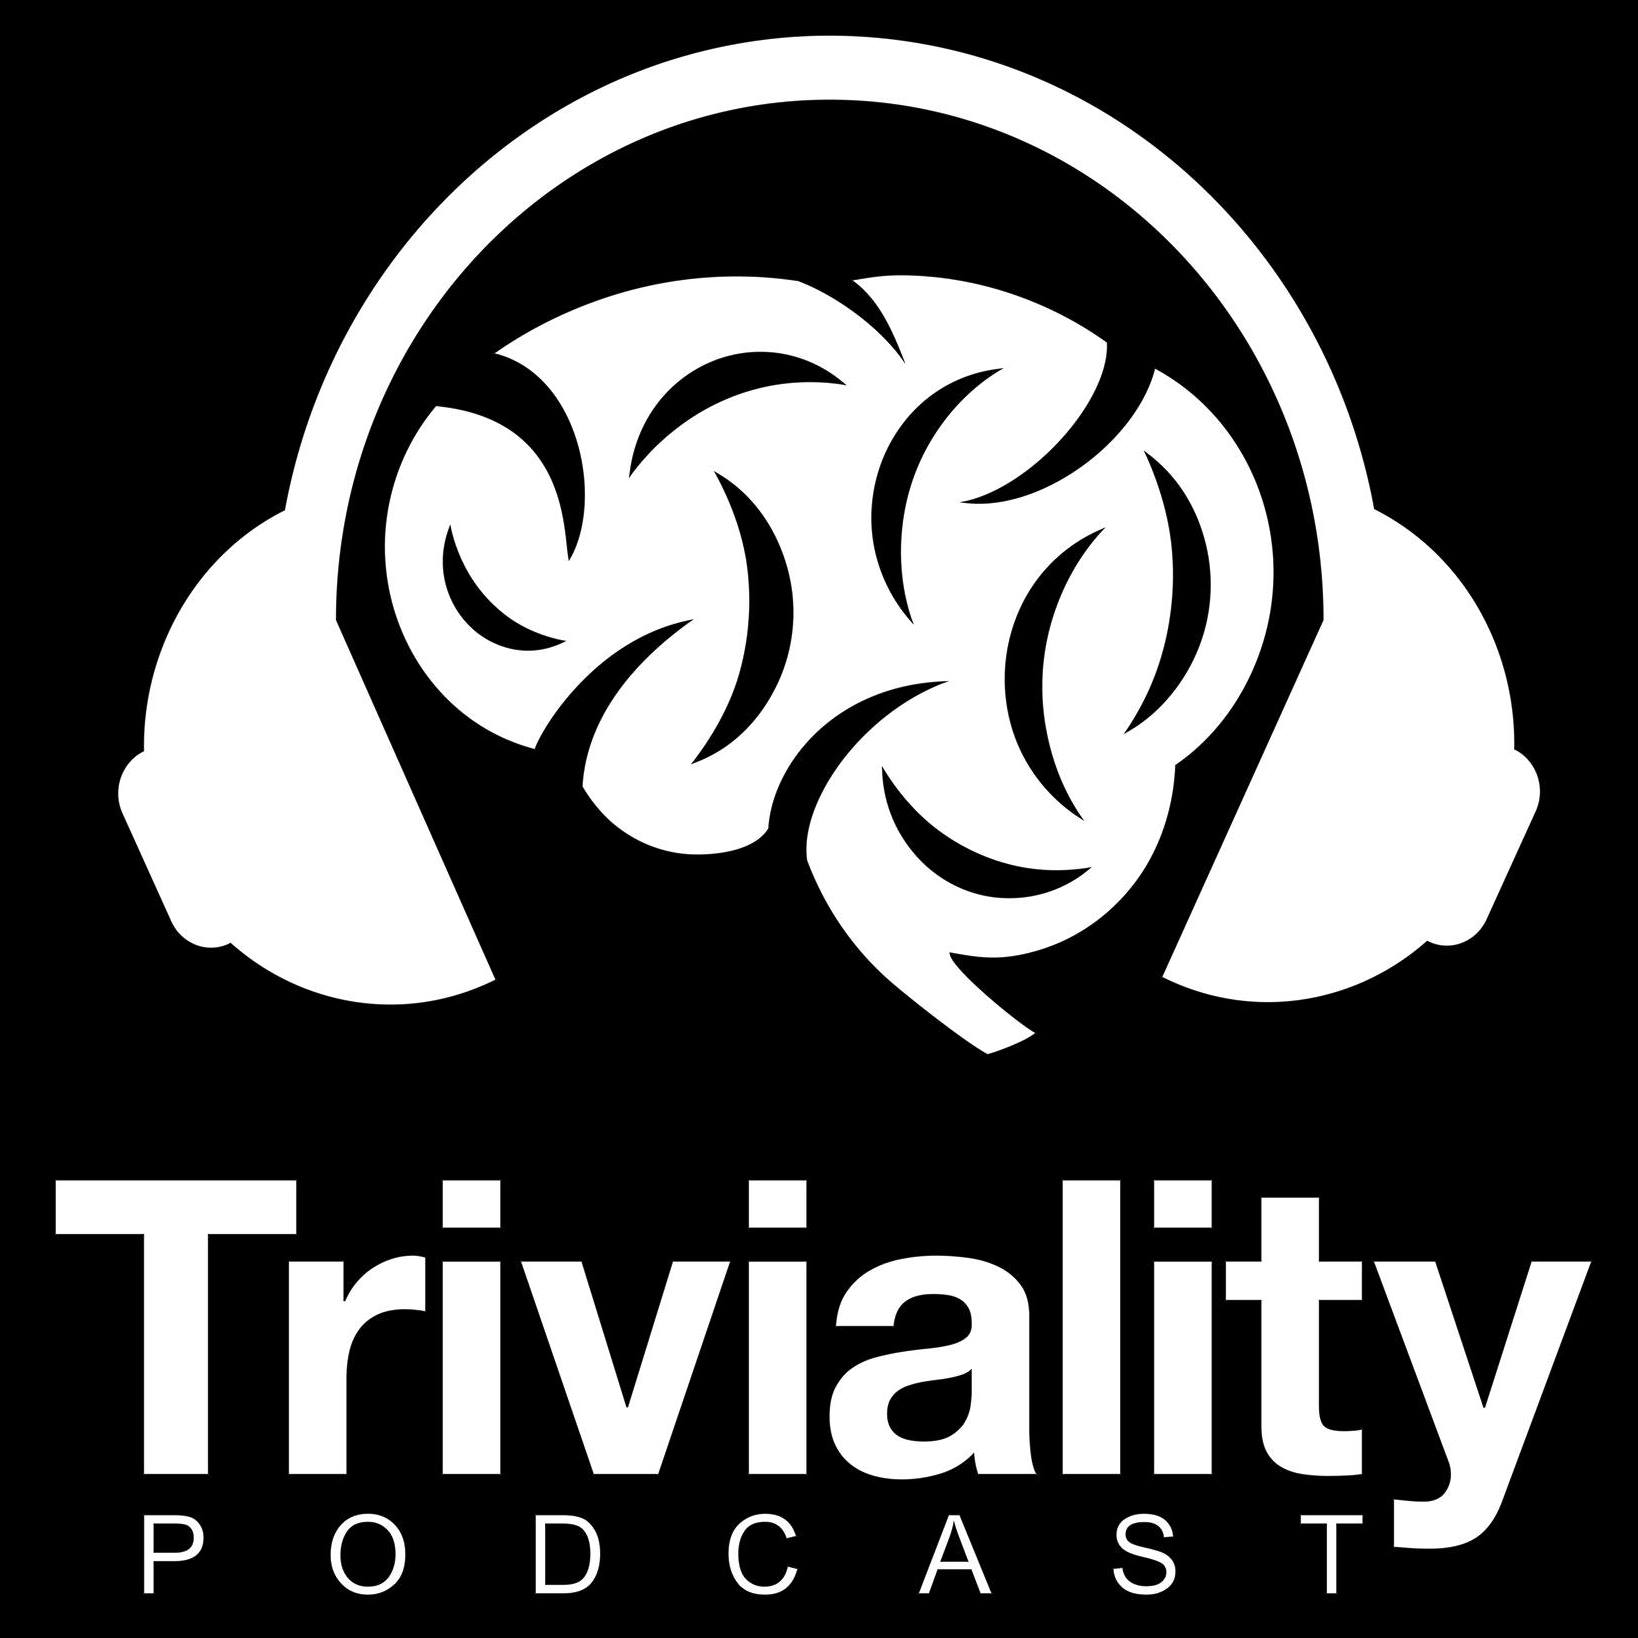 """- We all met playing local bar trivia and can't get enough. As a way to sharpen our skills and kill some time, we decided to create Triviality- a weekly trivia show where as we say """"a lack of seriousness meets a little bit of knowledge."""" We would like to create the best product that we can and so we created this podcast for all of you. Thank you for your support as we continue to grow, expand, and bring you the best product we can."""